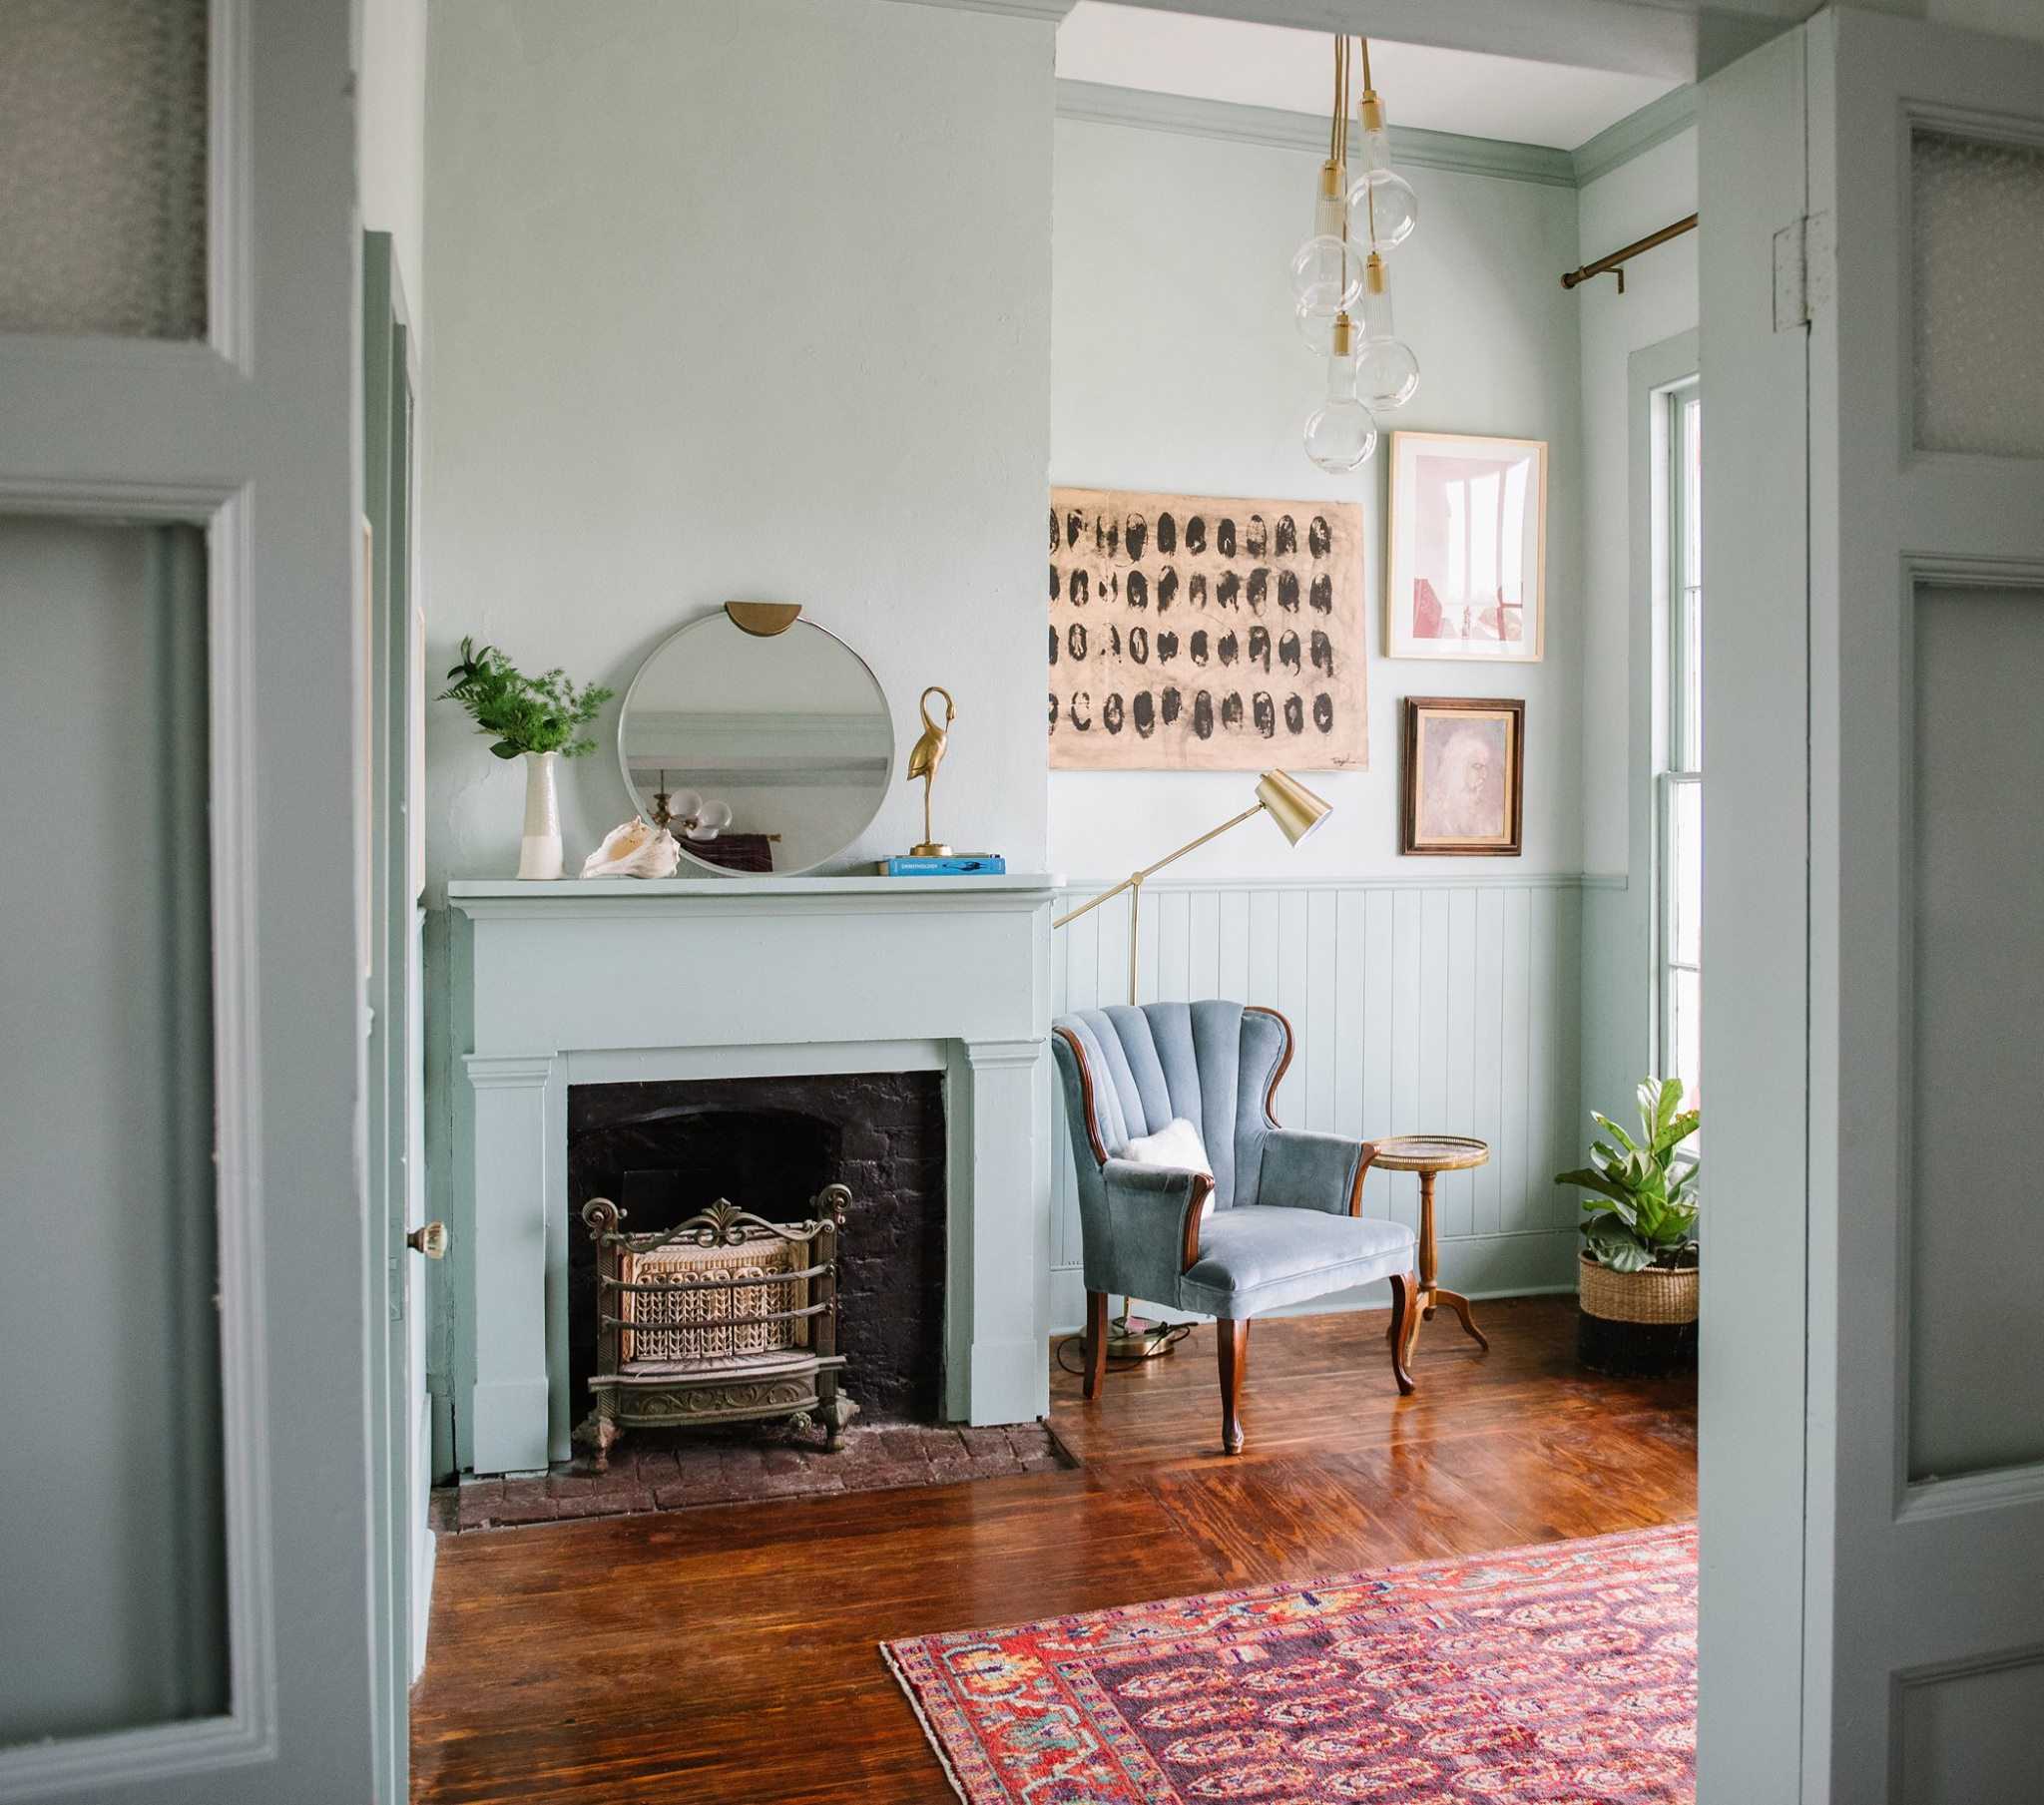 """""""This suite is called The Newlyweds for John & Ida Gross, who were given the estate as a wedding gift by Ida's parents, Herman & Bertha Marwitz.""""Photo by Maggie Kloss / Source:  Carr Mansion"""